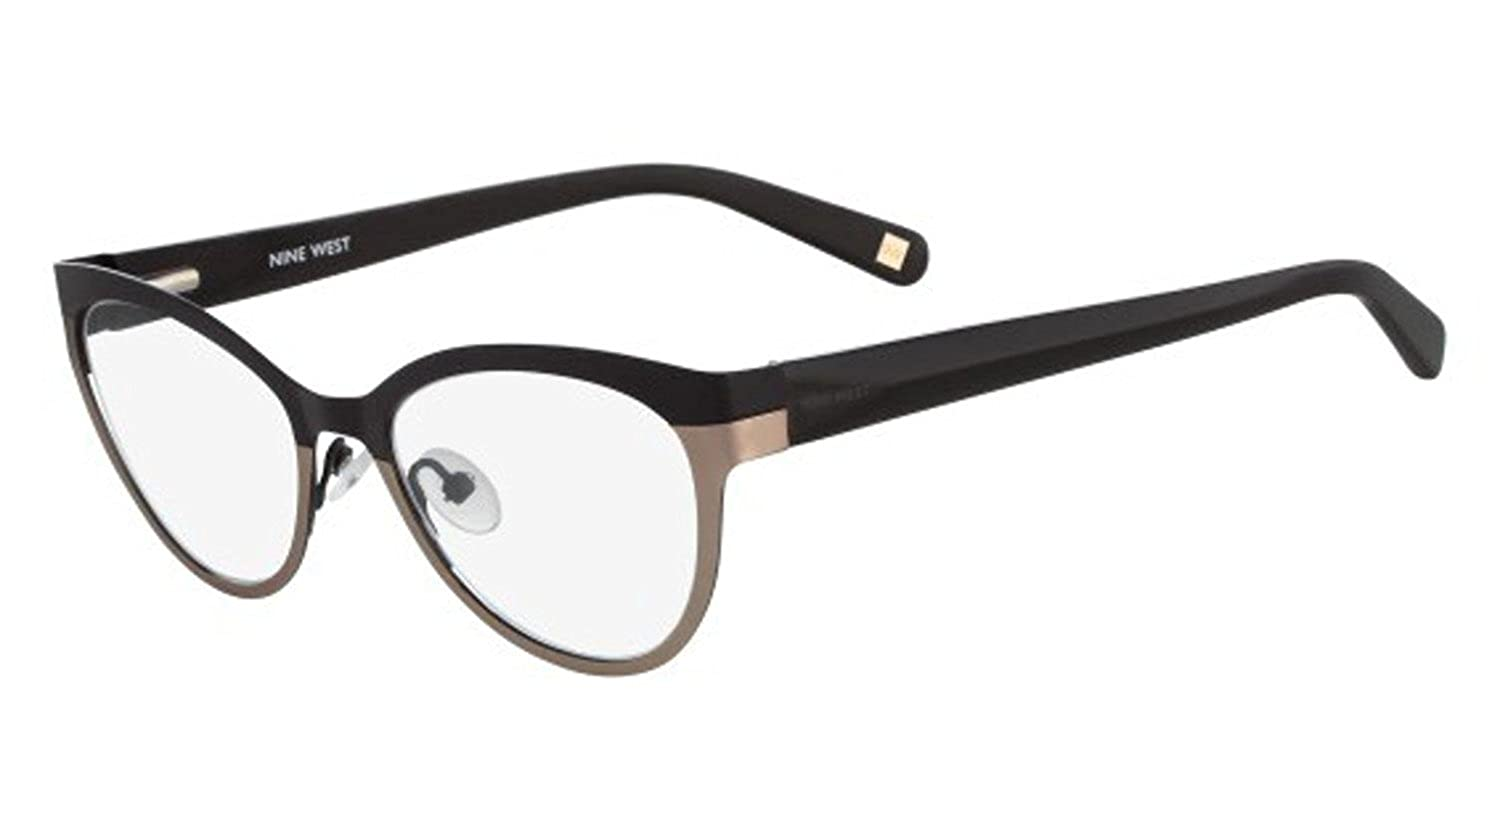 Eyeglasses NINE WEST NW1065 010 CHARCOAL